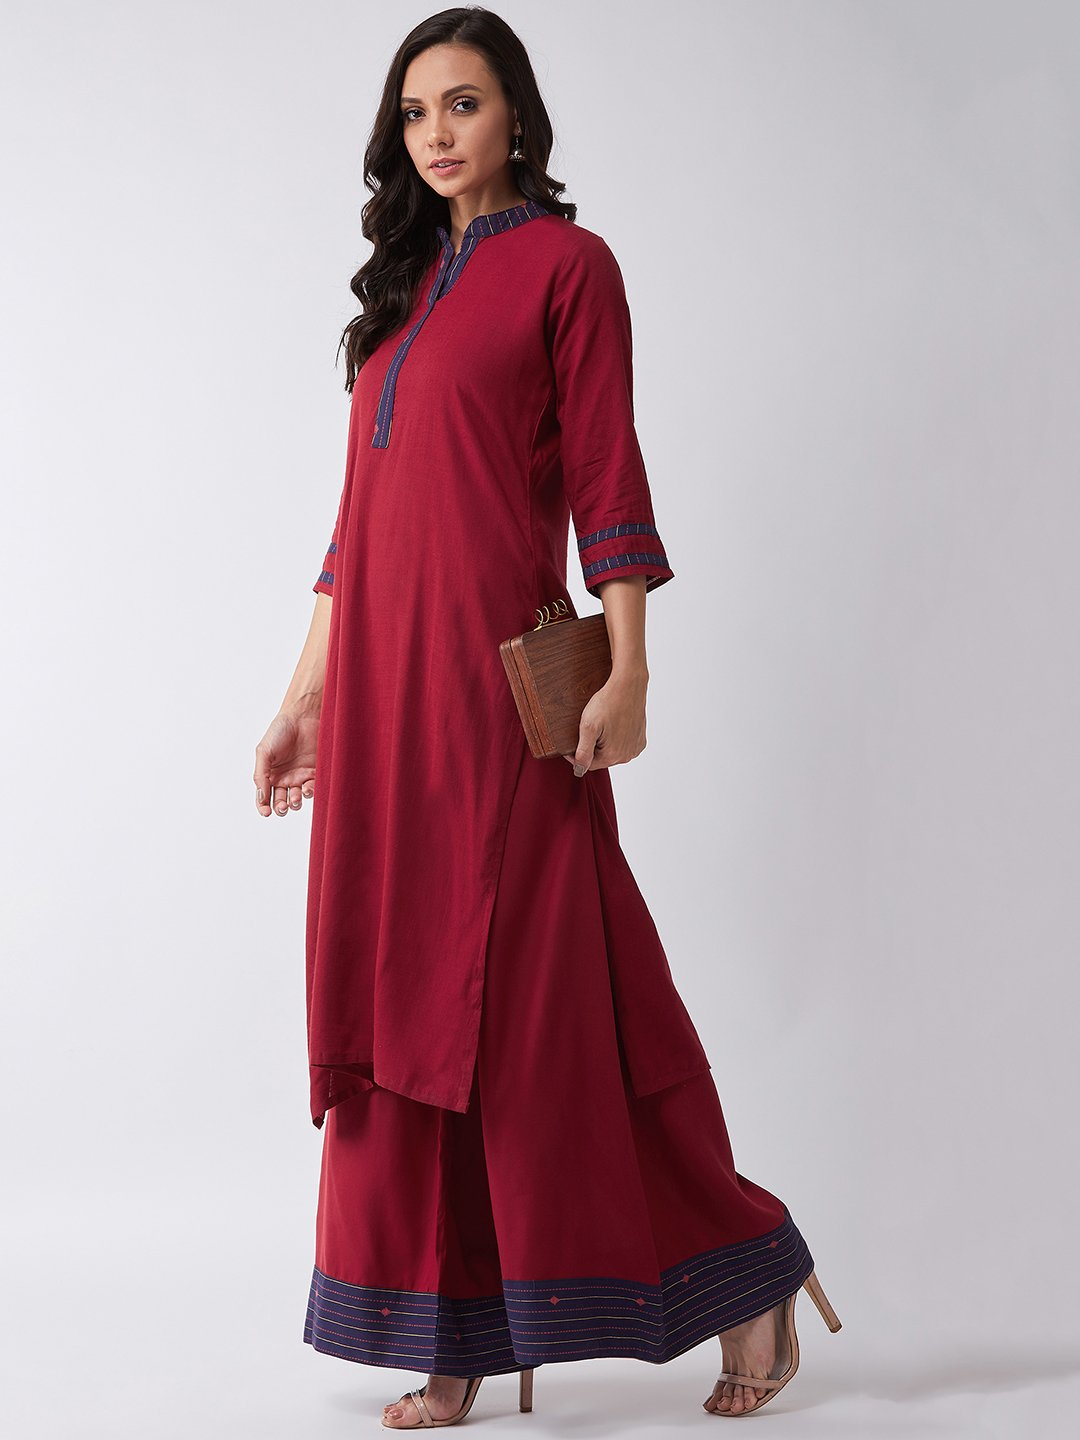 Maroon Kurta With Blue Patti